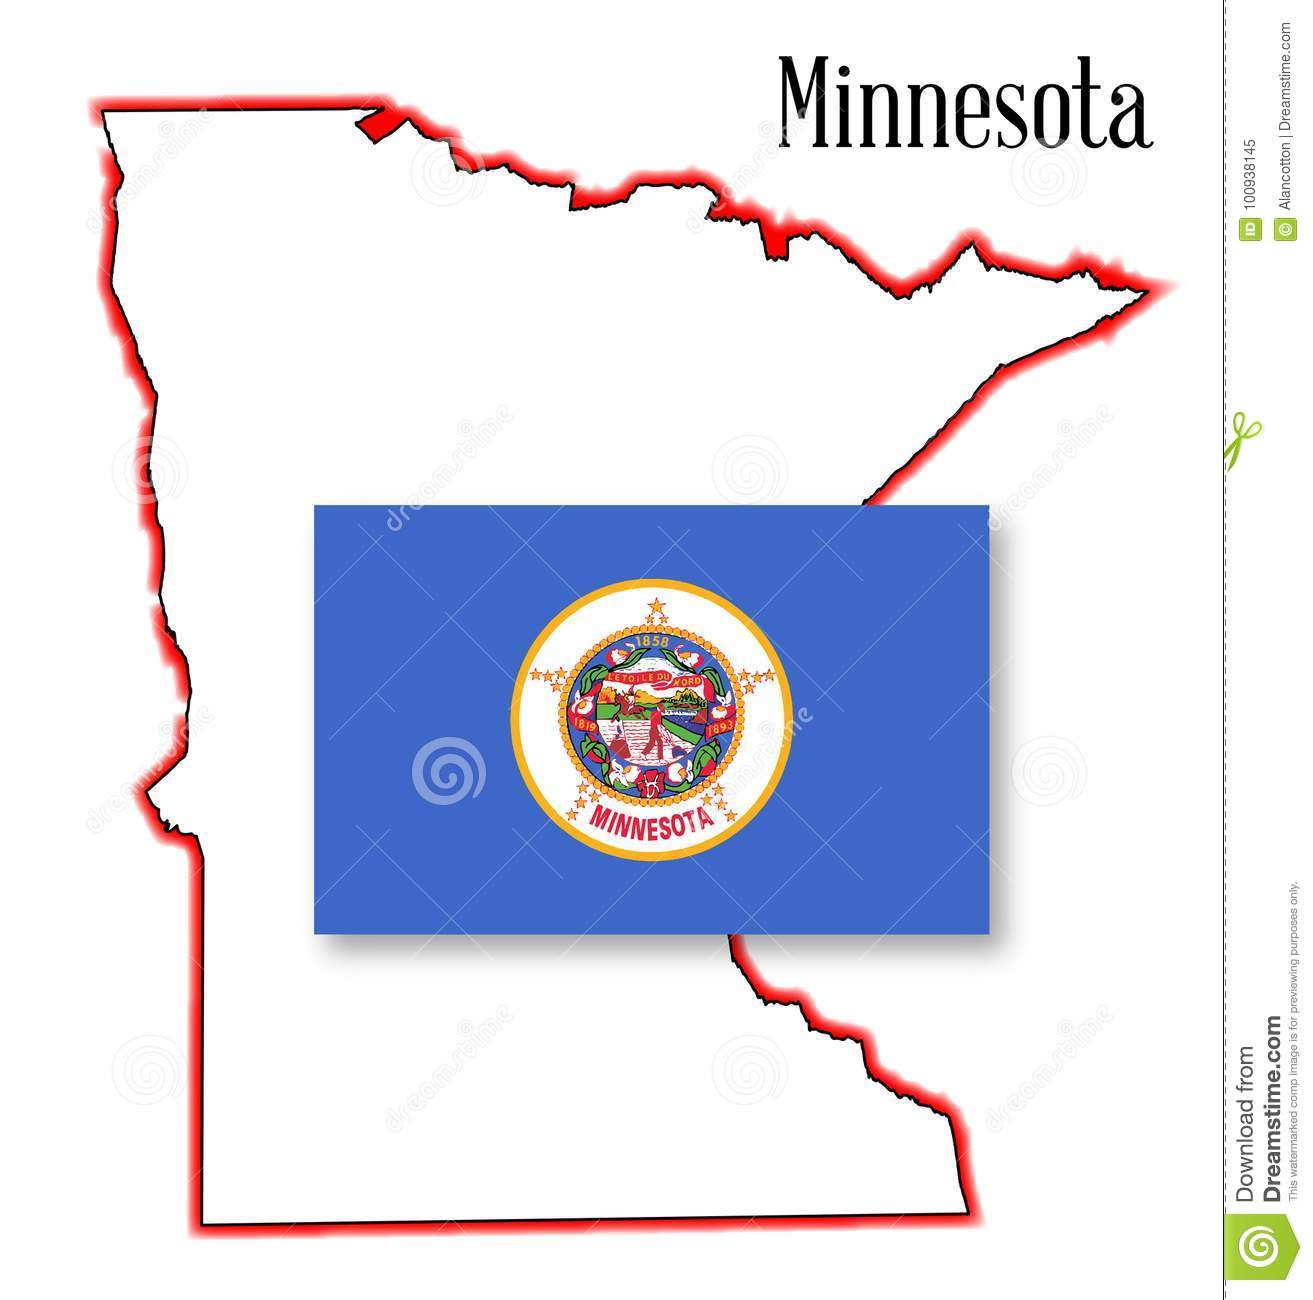 Minnesota State Map And Flag Stock Vector - Illustration of ... on new mexico map of usa, navy map of usa, alaska map of usa, al map of usa, brown map of usa, grand canyon map of usa, vermont map of usa, northeastern map of usa, massachusetts on map of usa, cincinnati map of usa, pittsburgh map of usa, dartmouth map of usa,